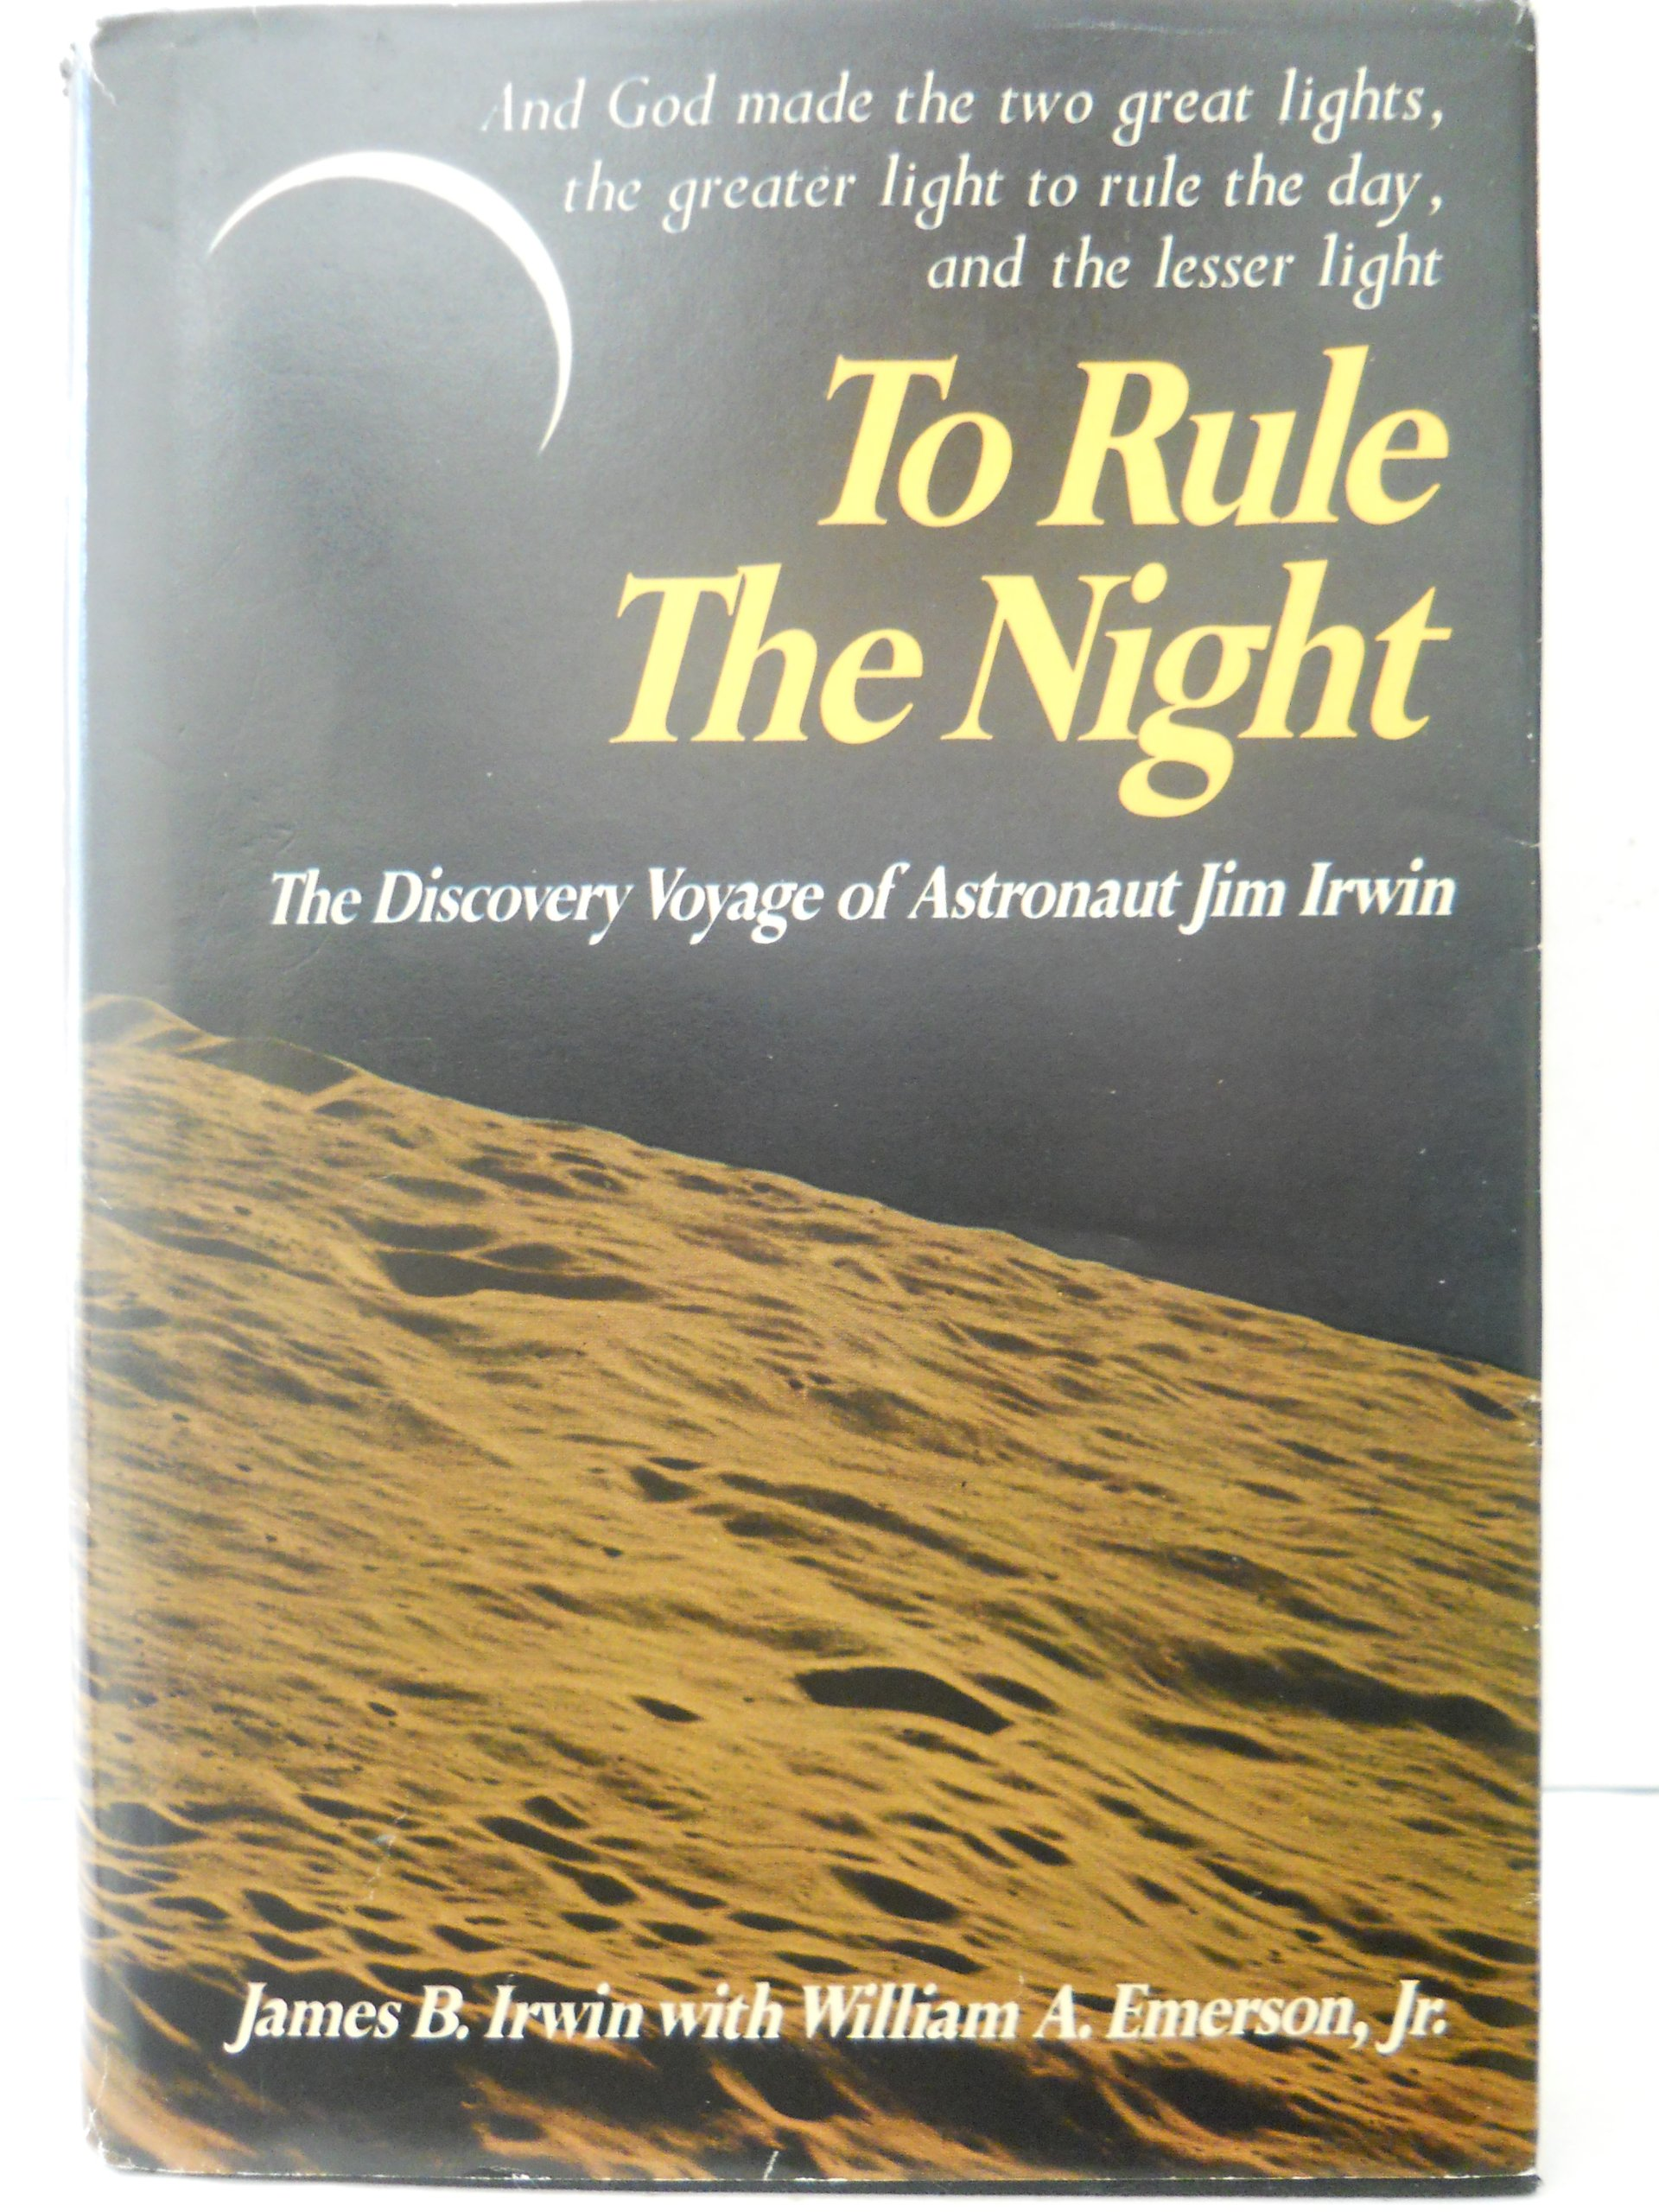 To Rule the Night: The Discovery Voyage of Astronaut Jim Irwin: Jim Irwin,  William A. Emerson Jr.: 9780879810245: Amazon.com: Books